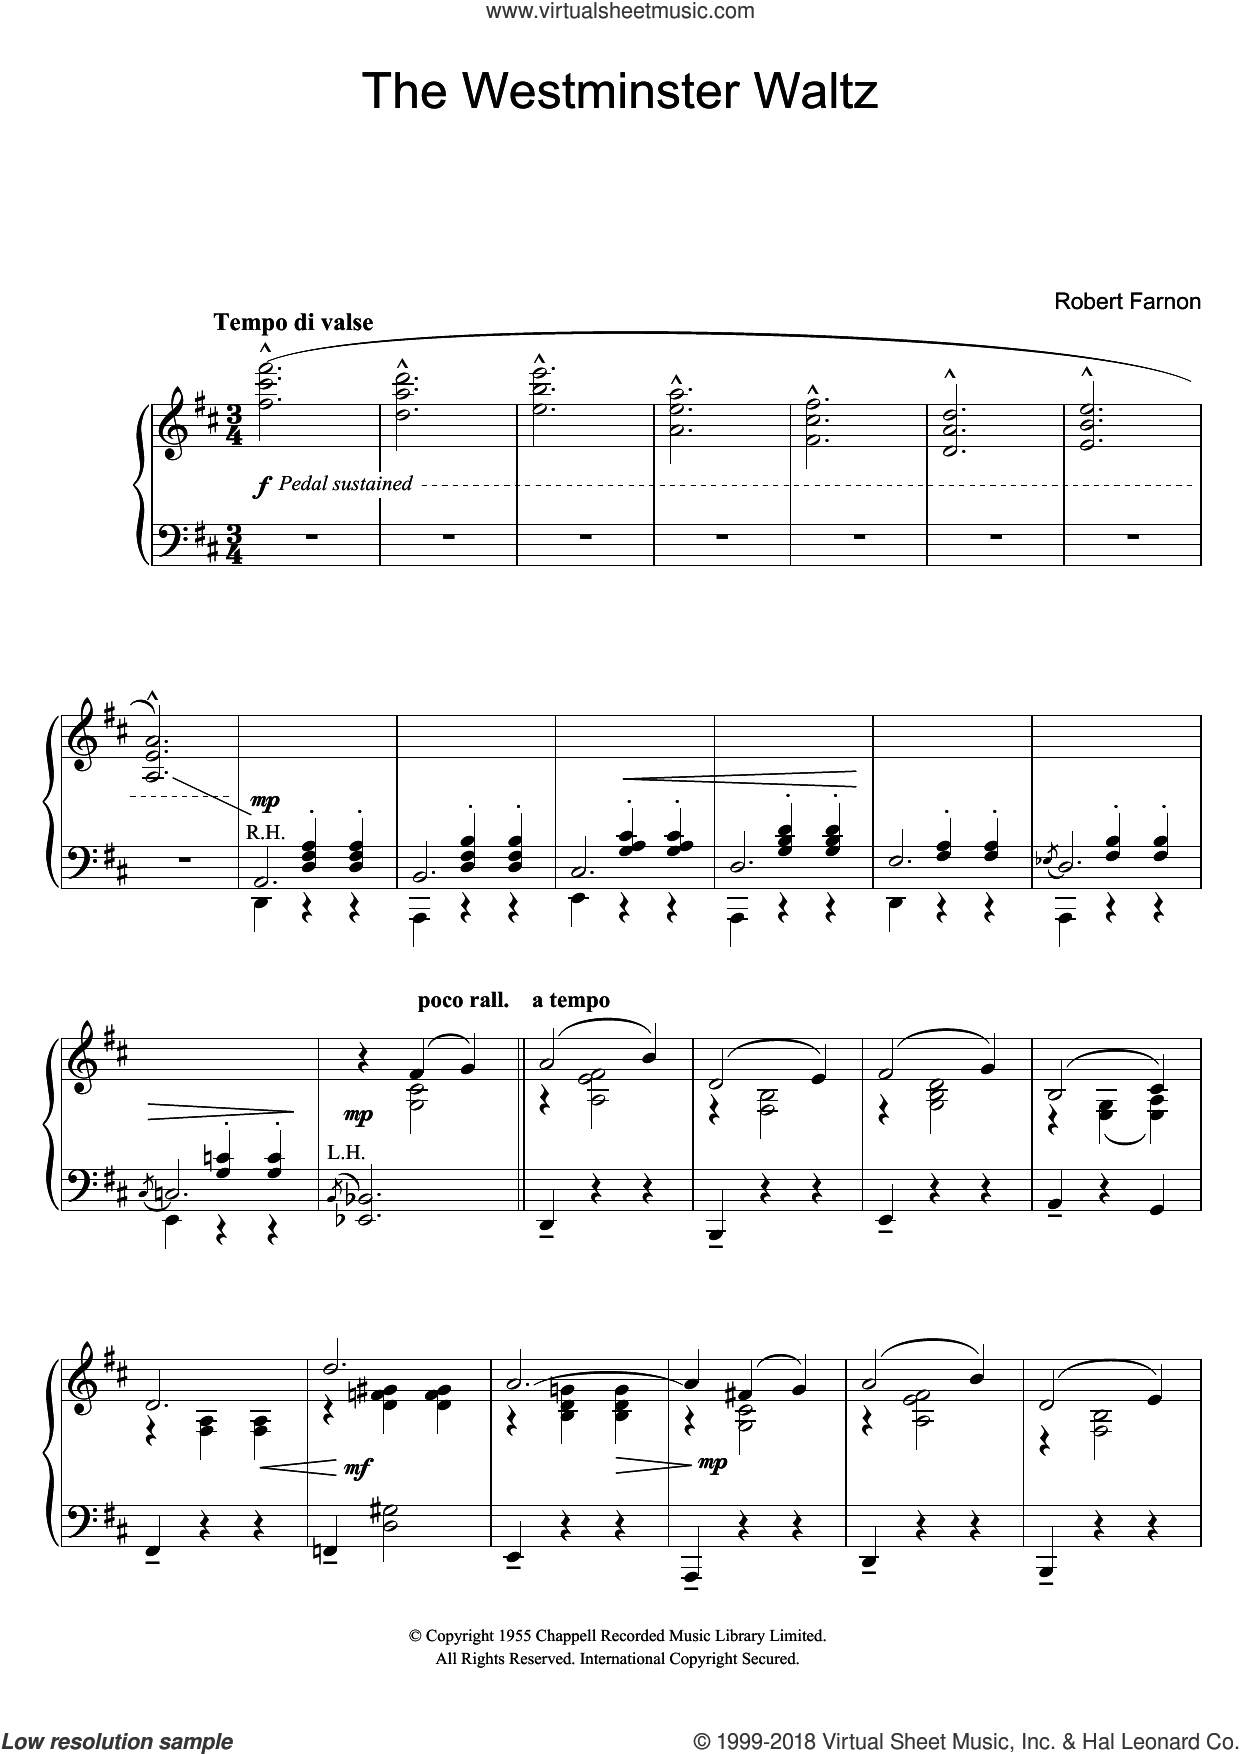 The Westminster Waltz sheet music for piano solo by Robert Farnon